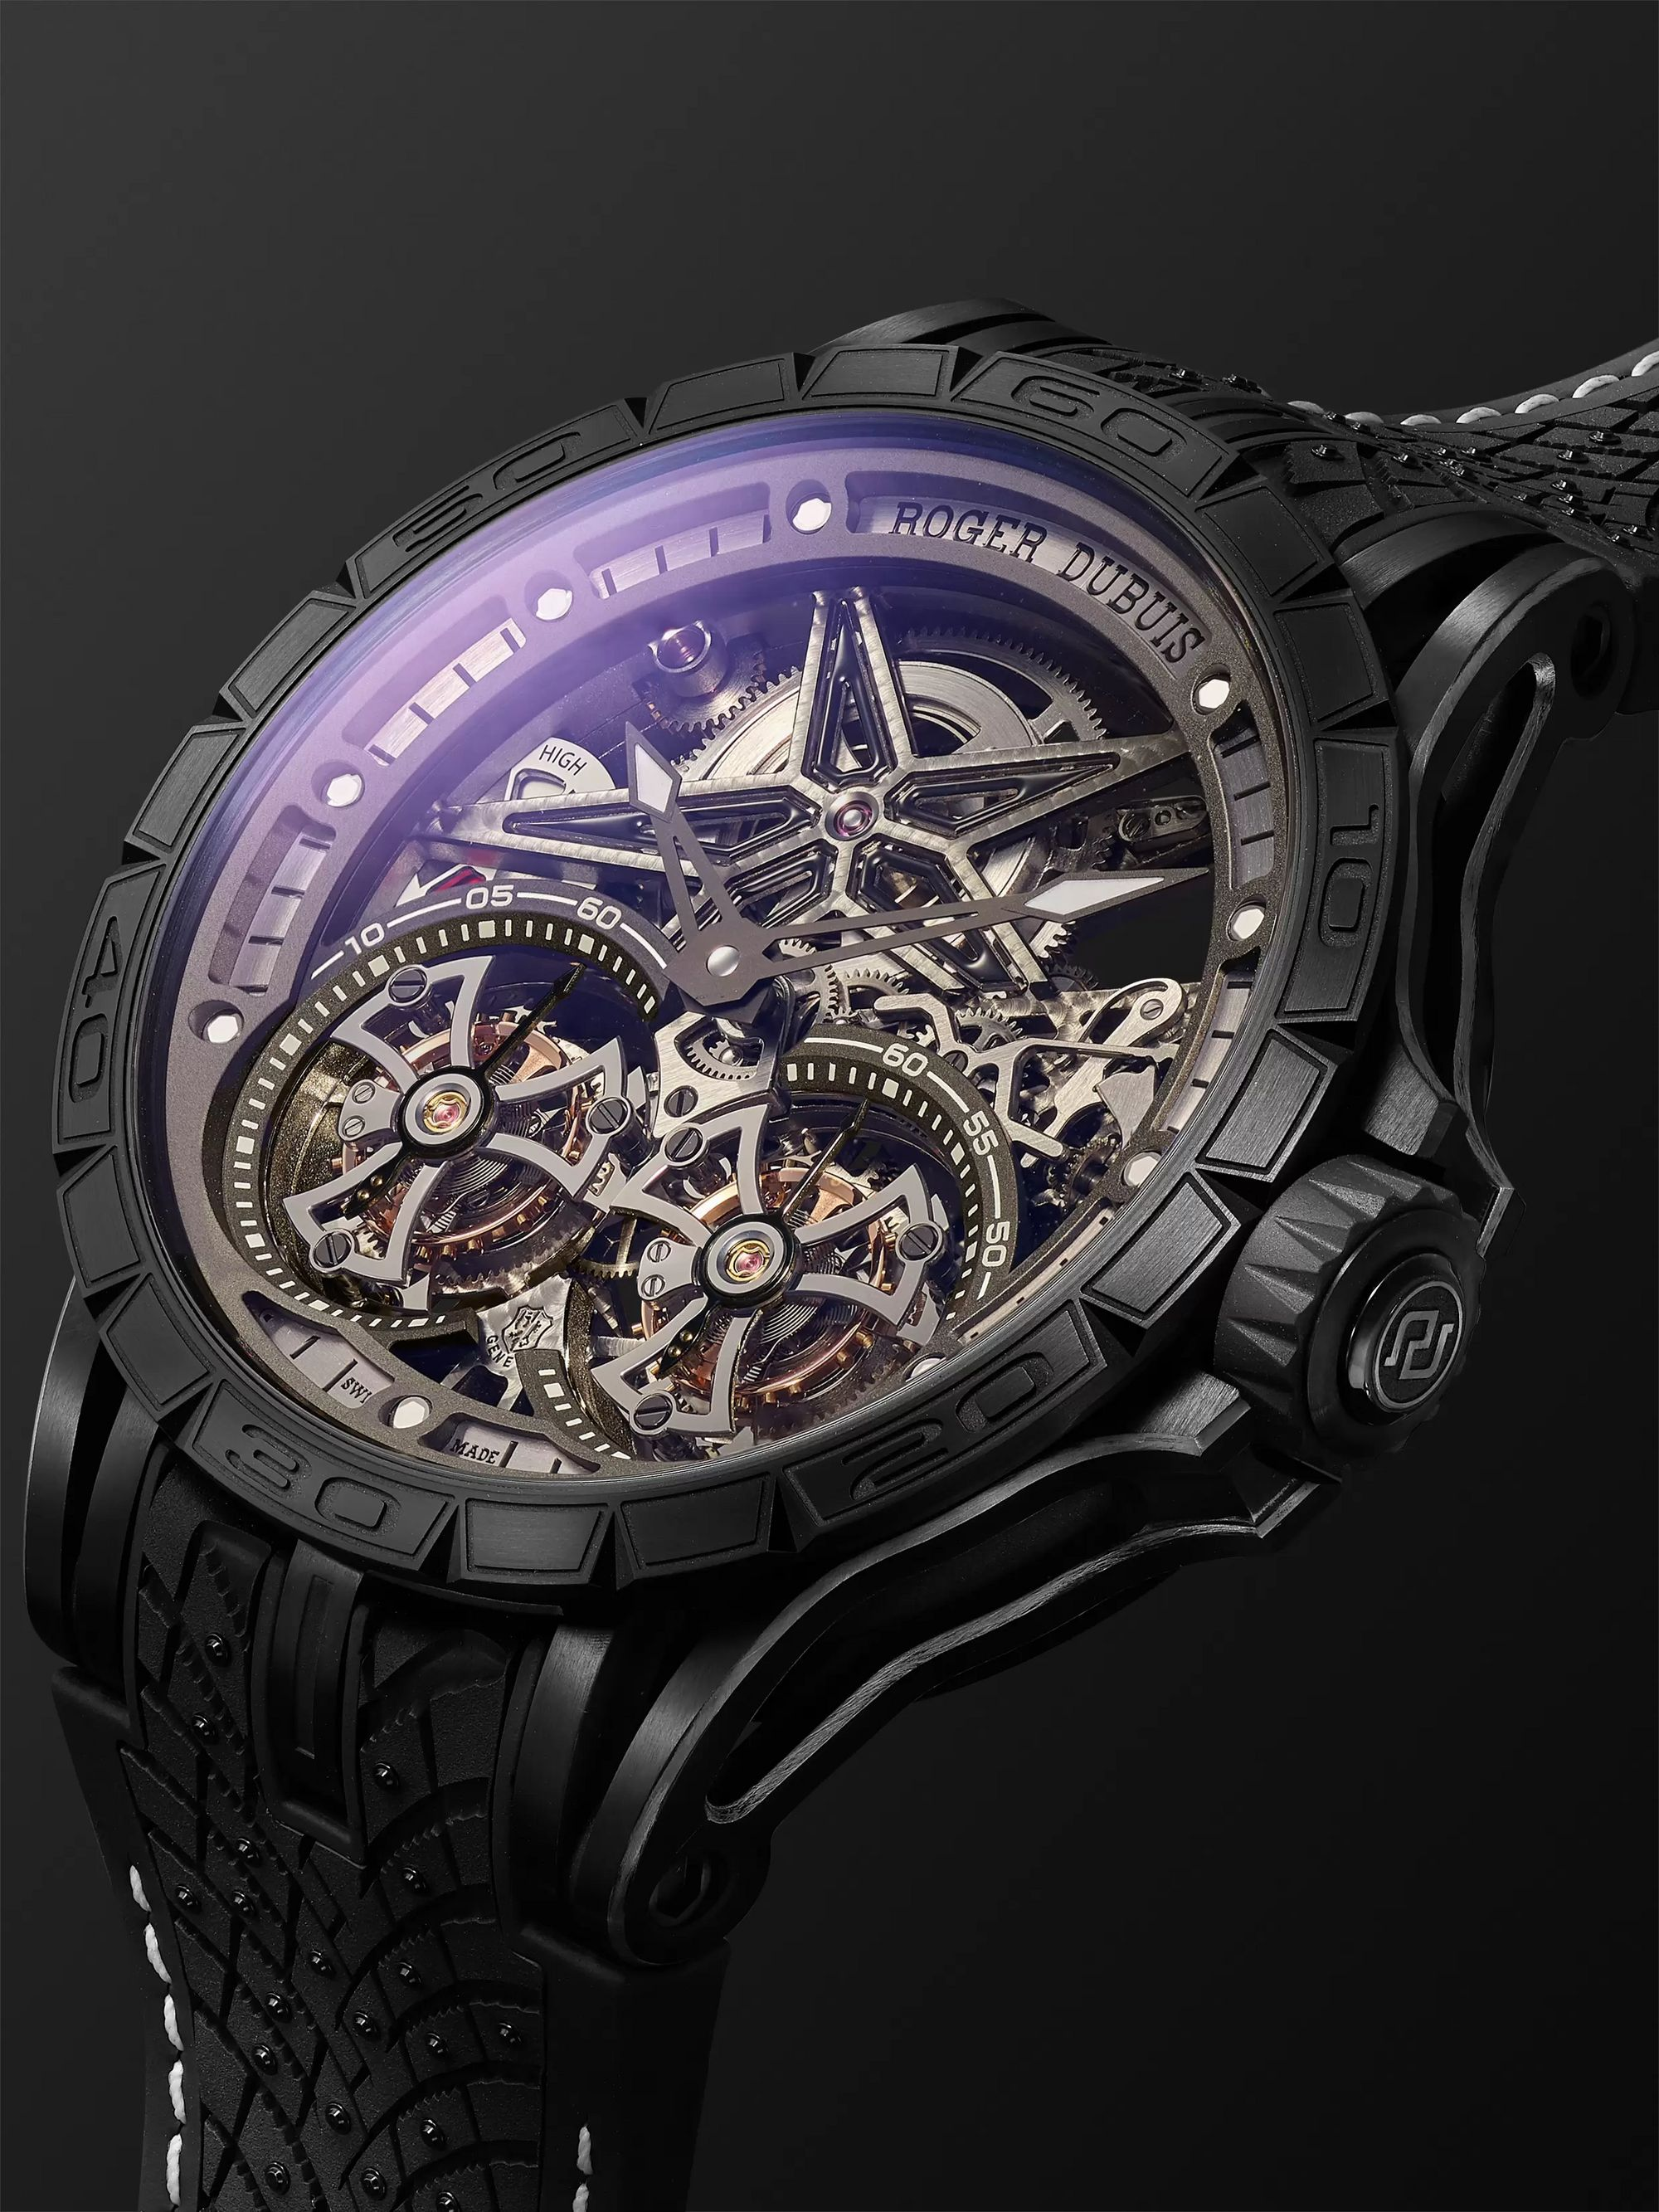 Roger Dubuis Excalibur Pirelli ICE ZERO 2 One-of-a-Kind Hand-Wound Skeleton Double Flying Tourbillon 47mm Titanium and Rubber Watch, Ref.